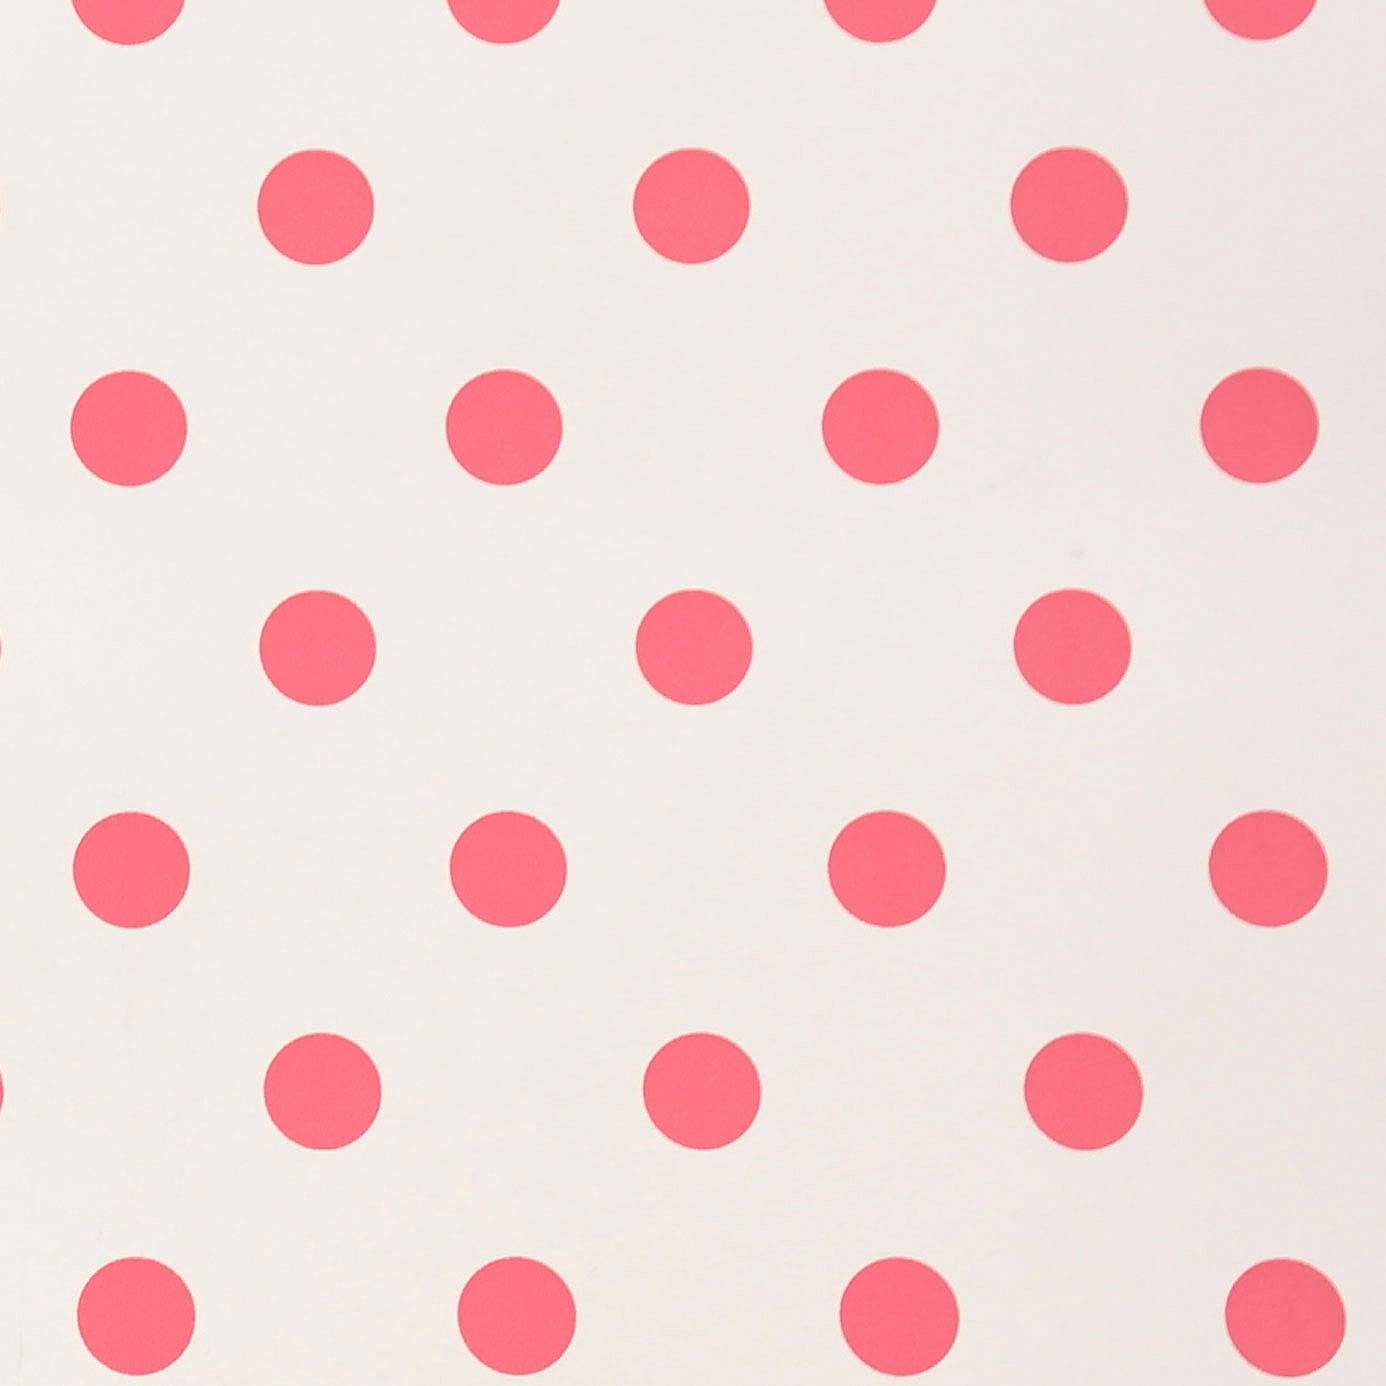 Collection of Polka Dots Wallpaper on HDWallpapers